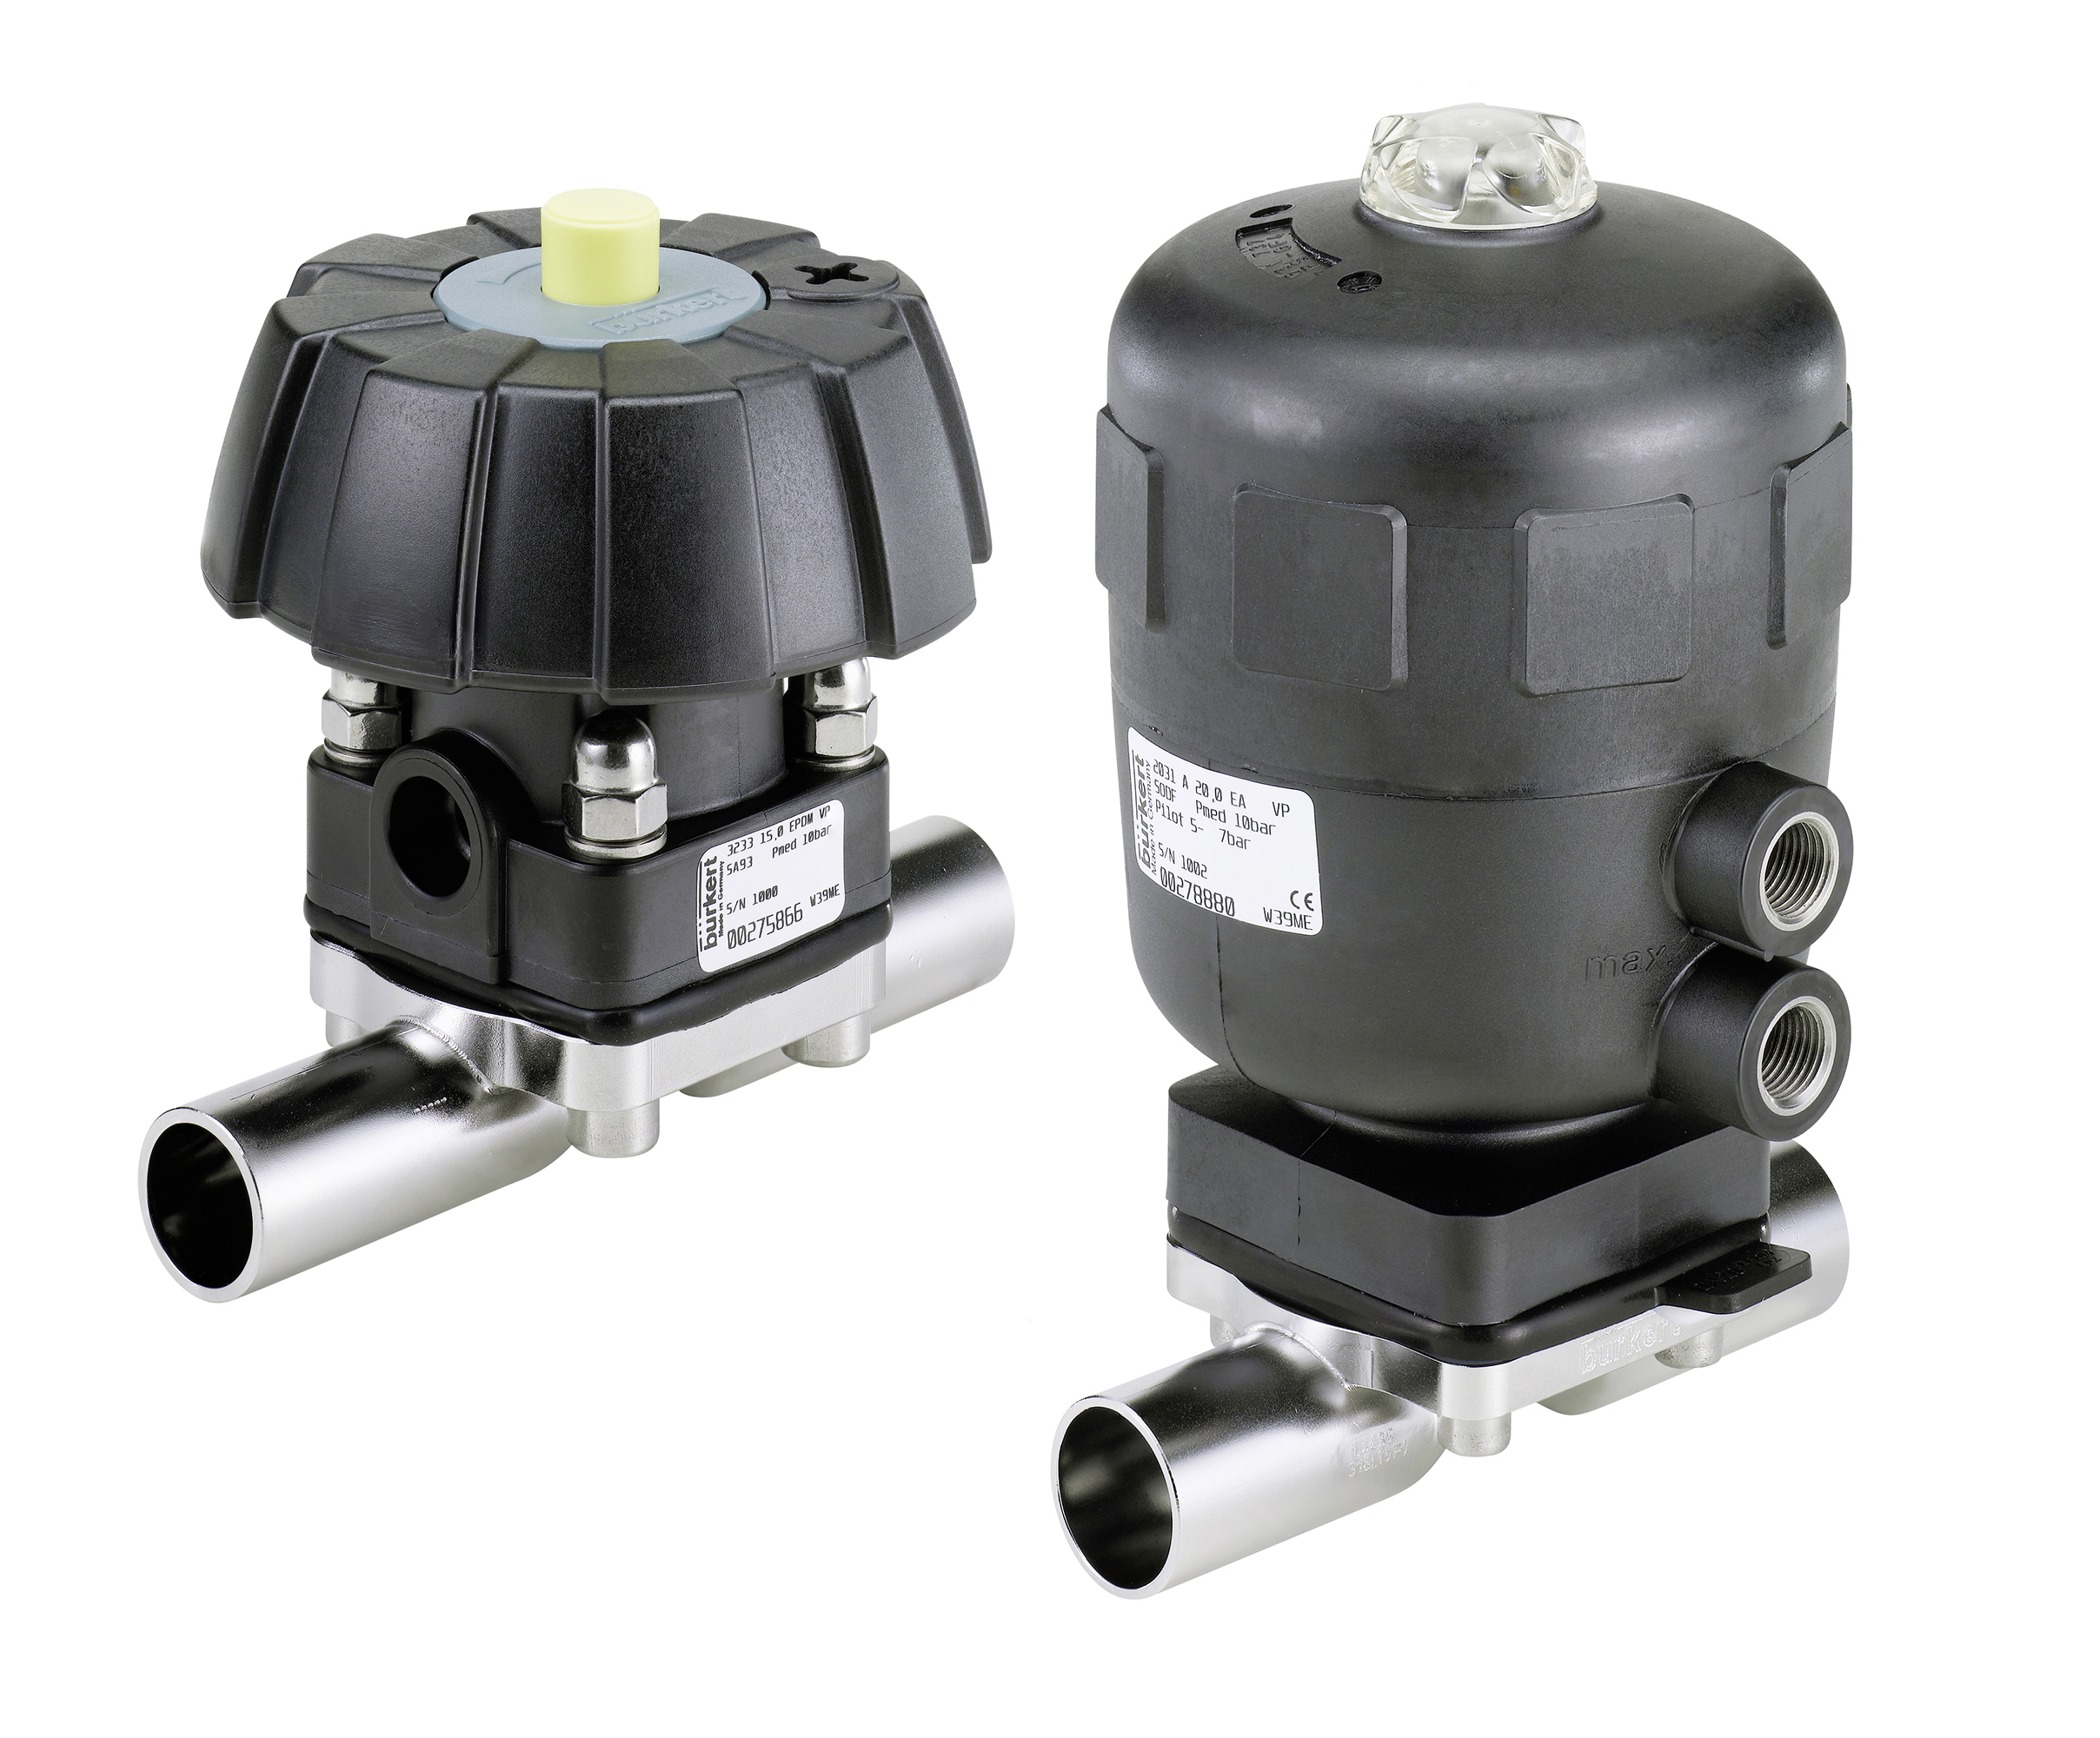 Brkert launches latest hygienic diaphragm valve diaphragm valve ccuart